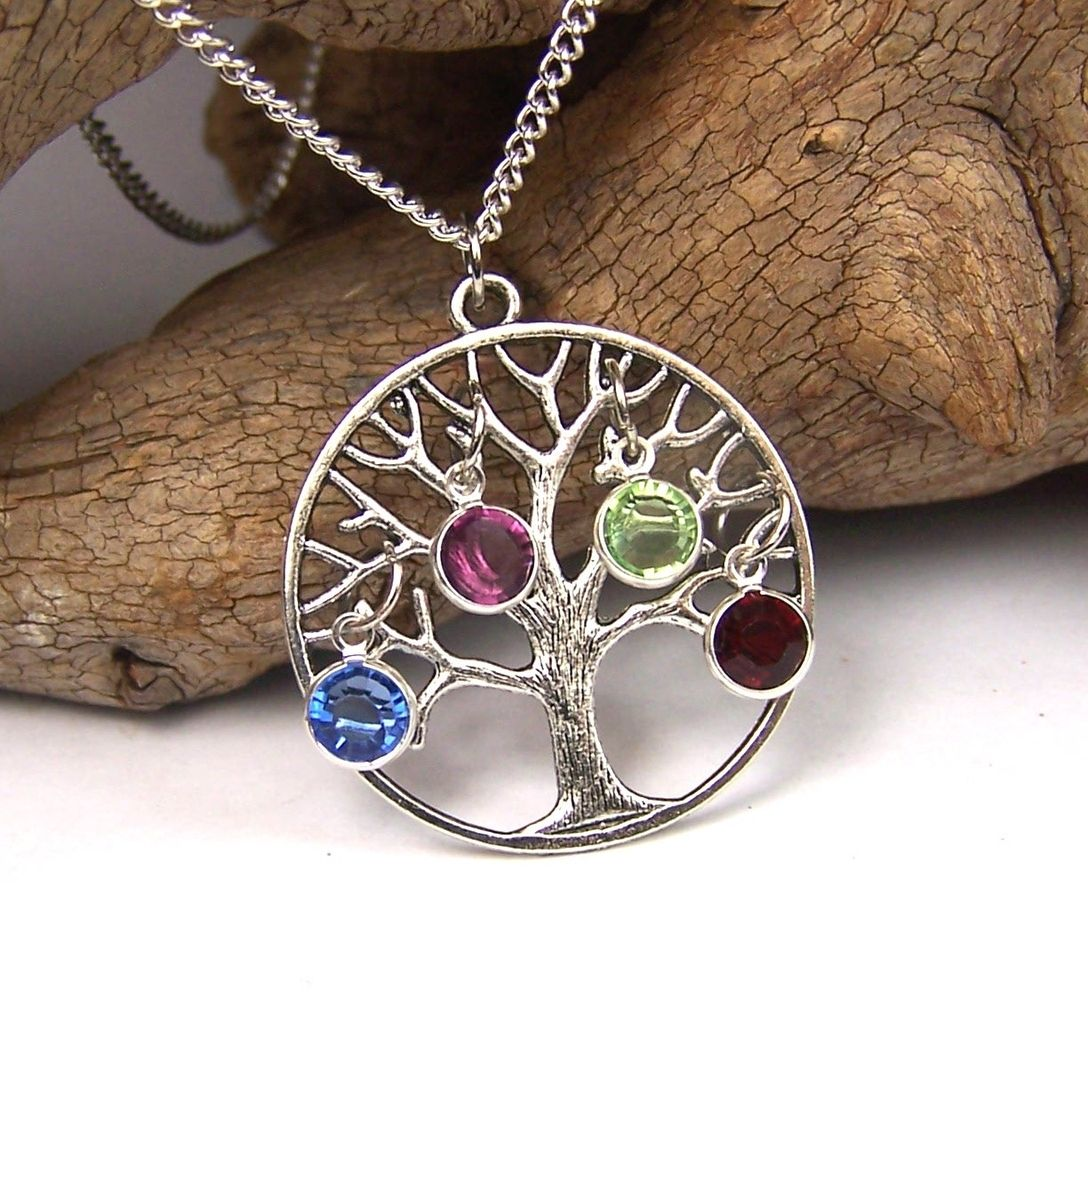 Buy hand crafted personalized family tree necklace pendant with custom made personalized family tree necklace pendant with birthstones swarovski crystals aloadofball